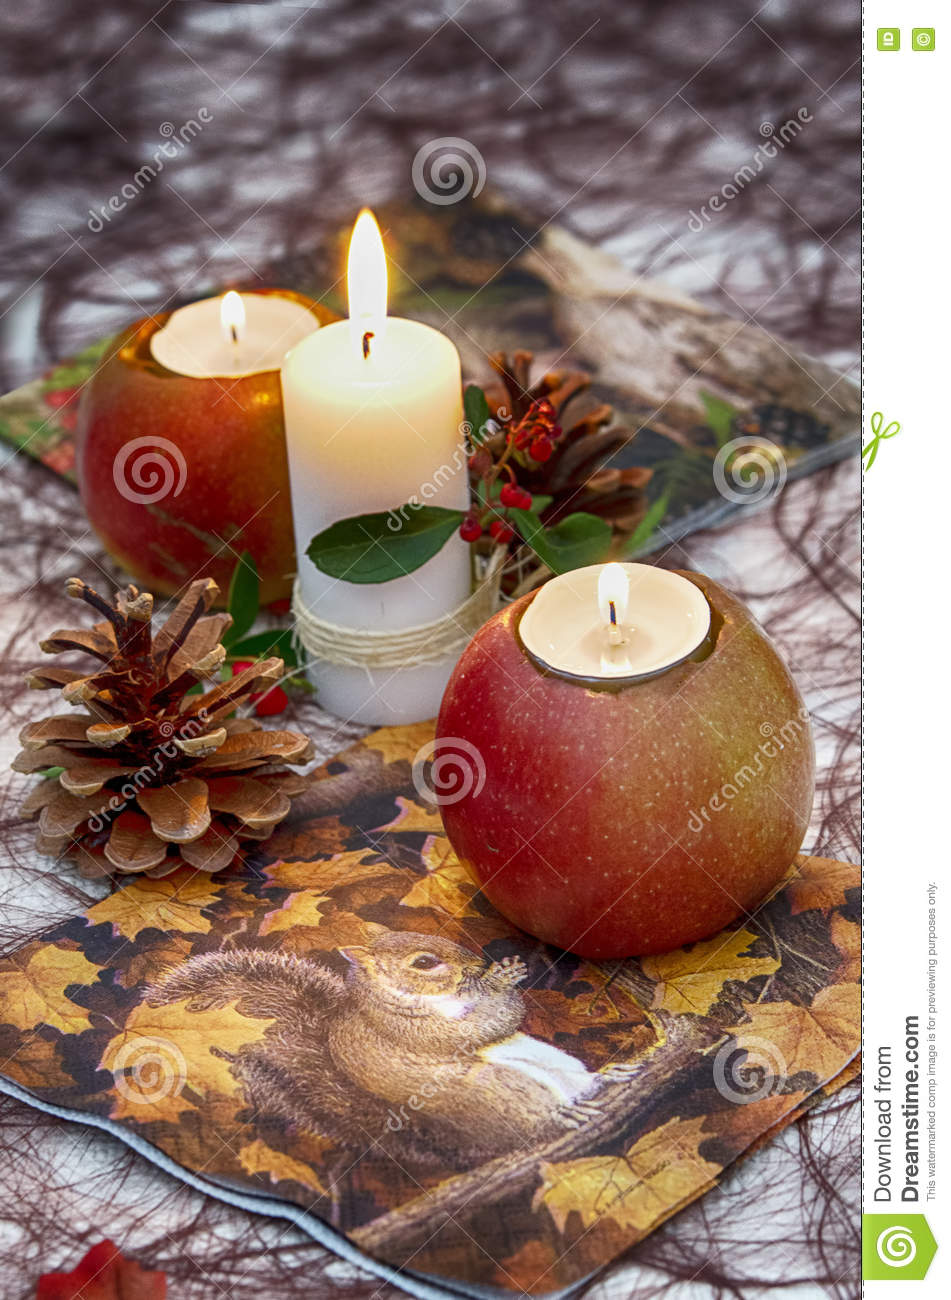 Dinner Party Table Setting Decorations Stock Image Image Of Decorative Party 81319611